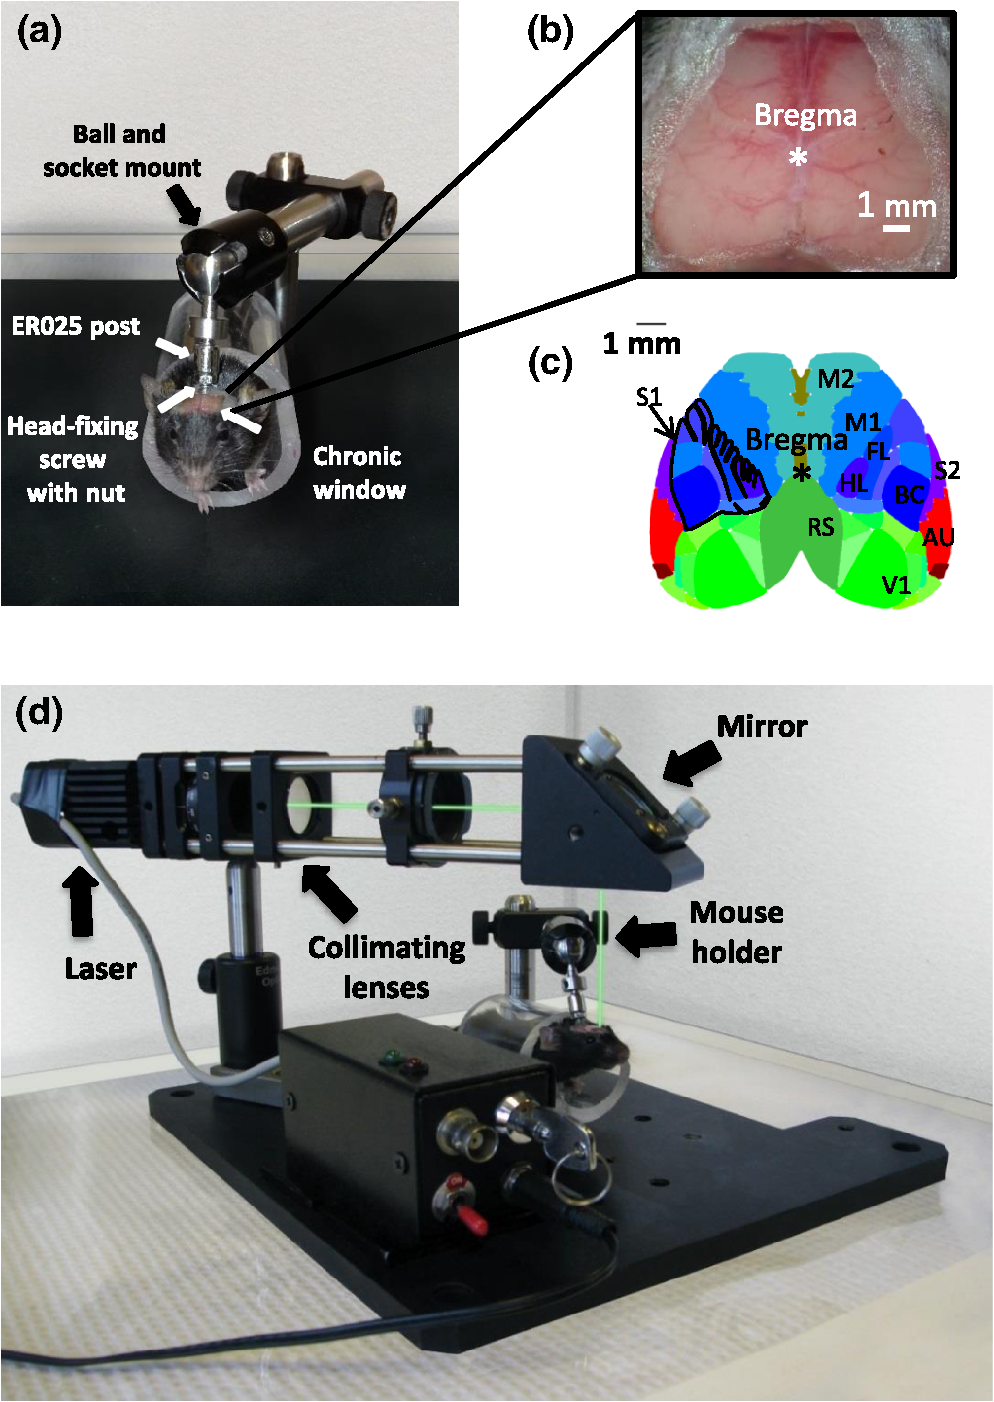 Targeted ischemic stroke induction and mesoscopic imaging